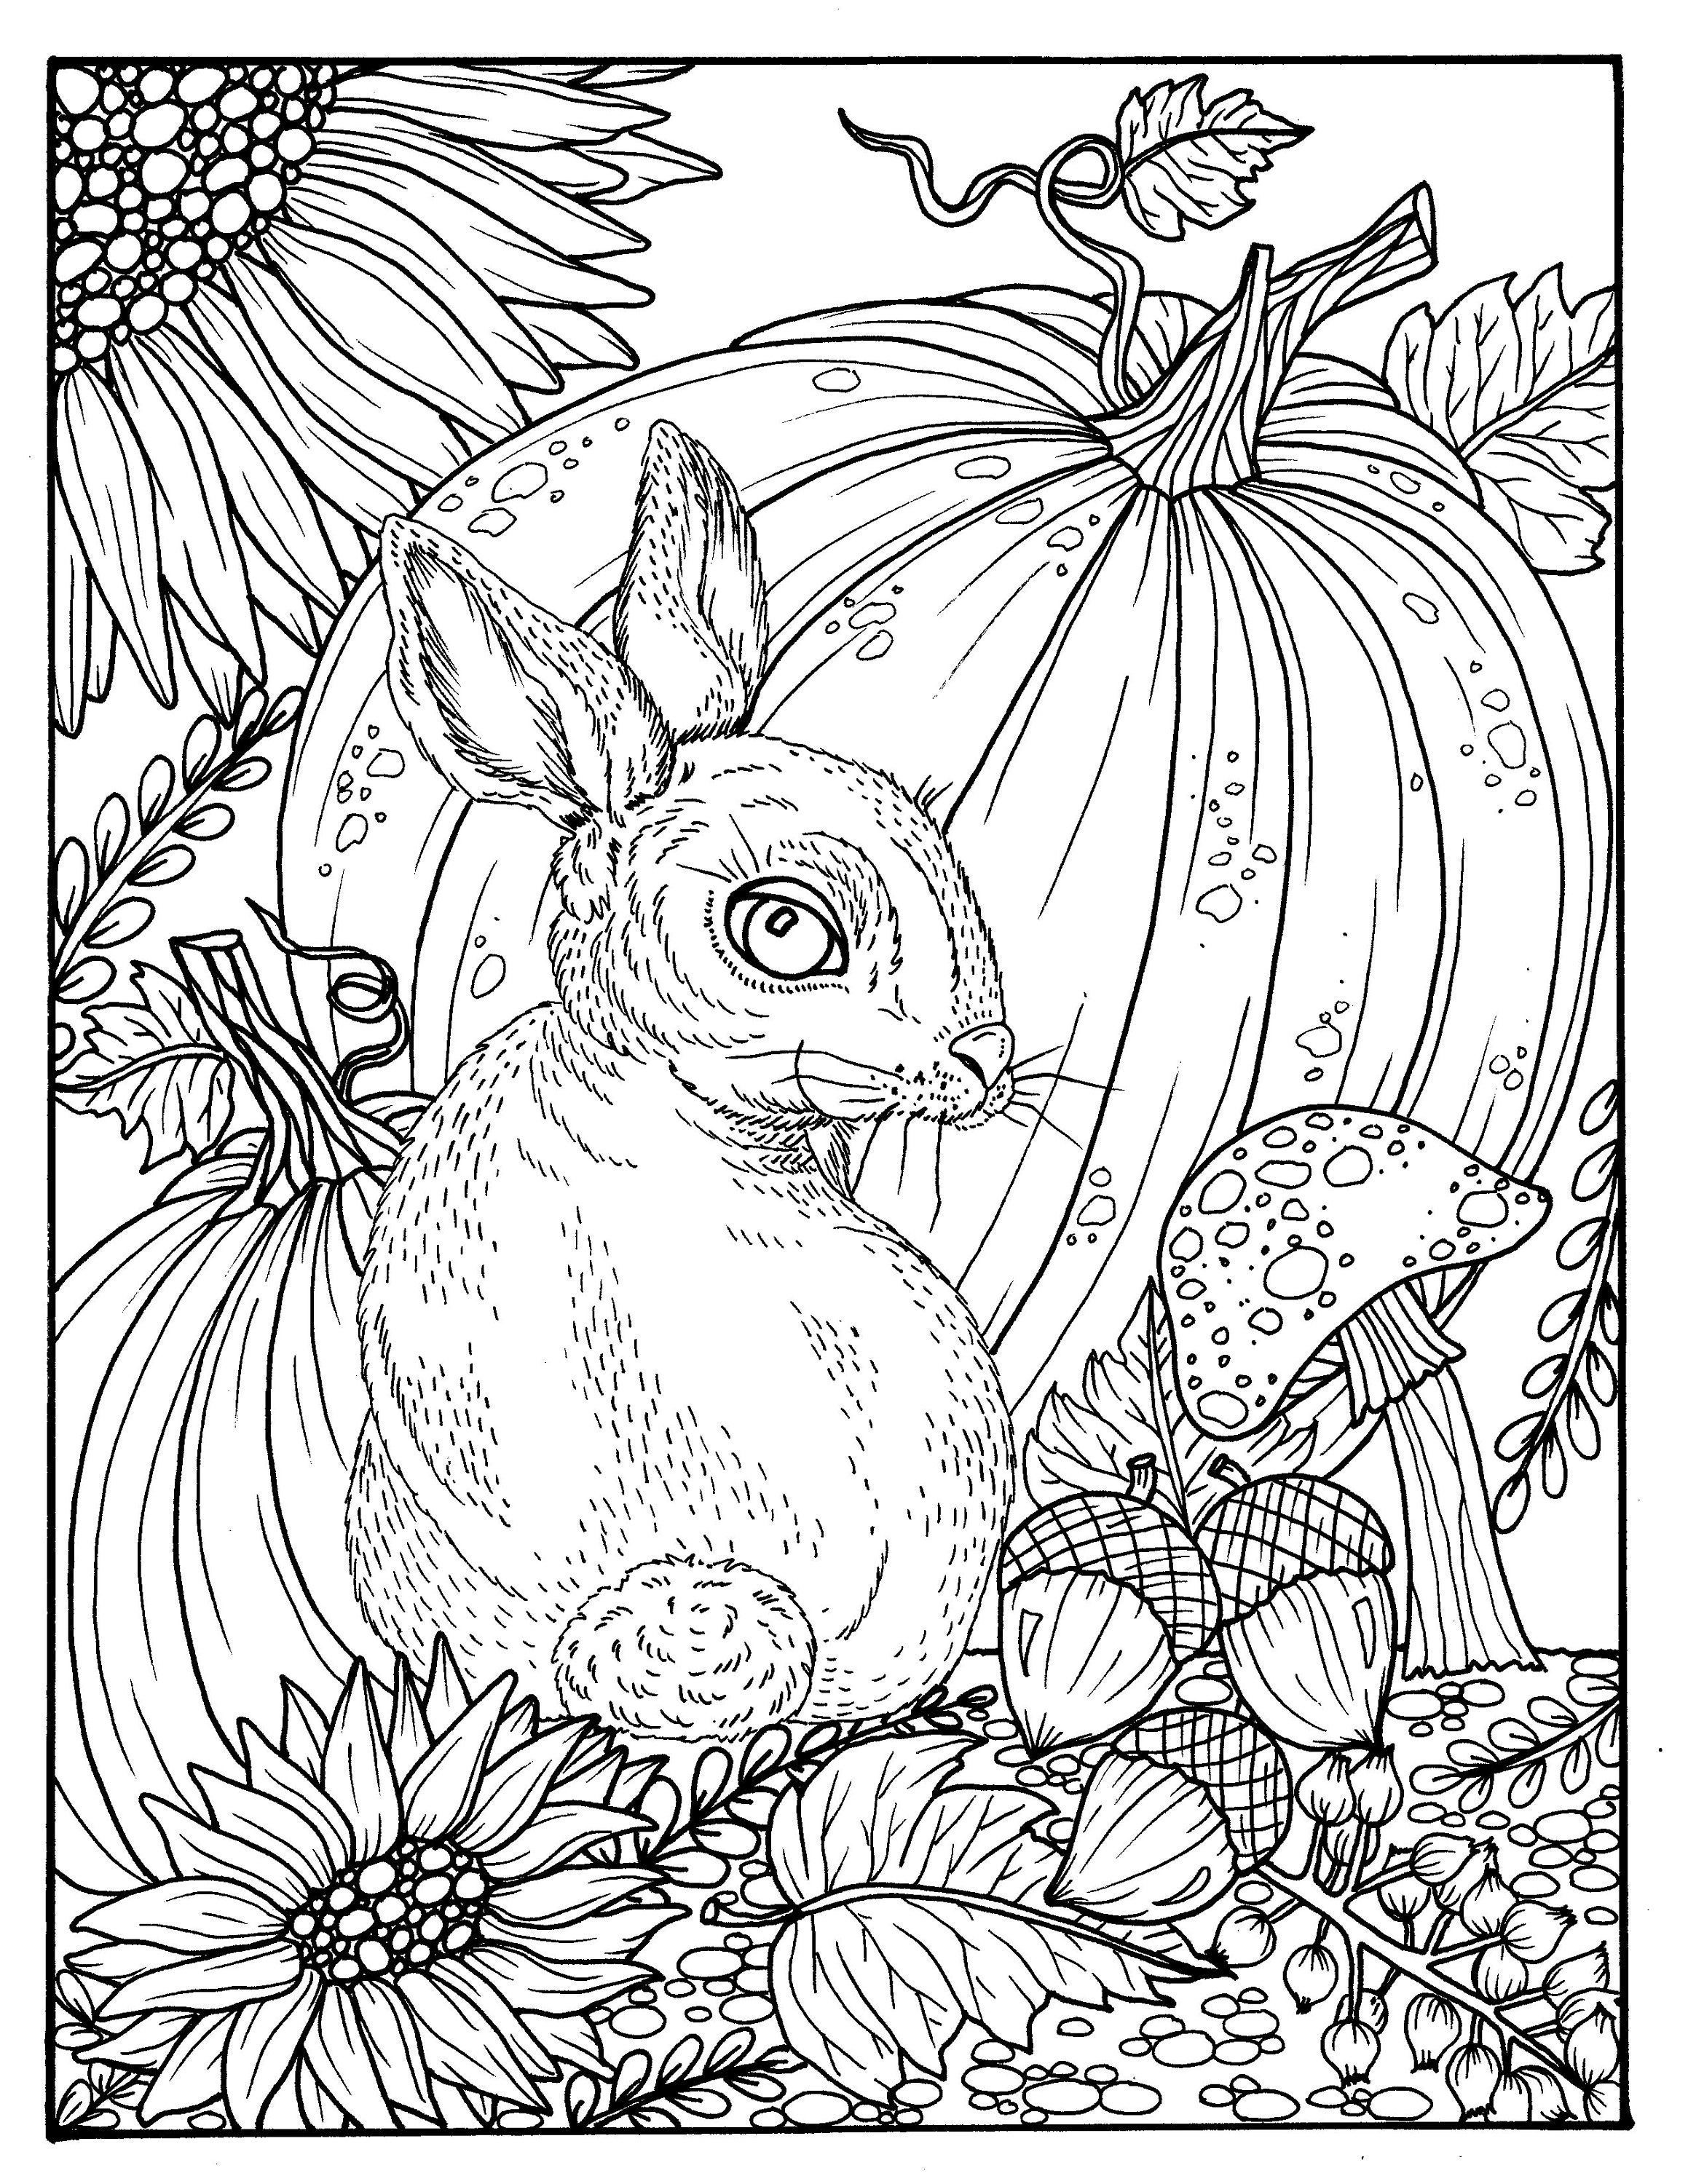 Fall Bunny and pumpkin coloring page digital digi adult | Etsy